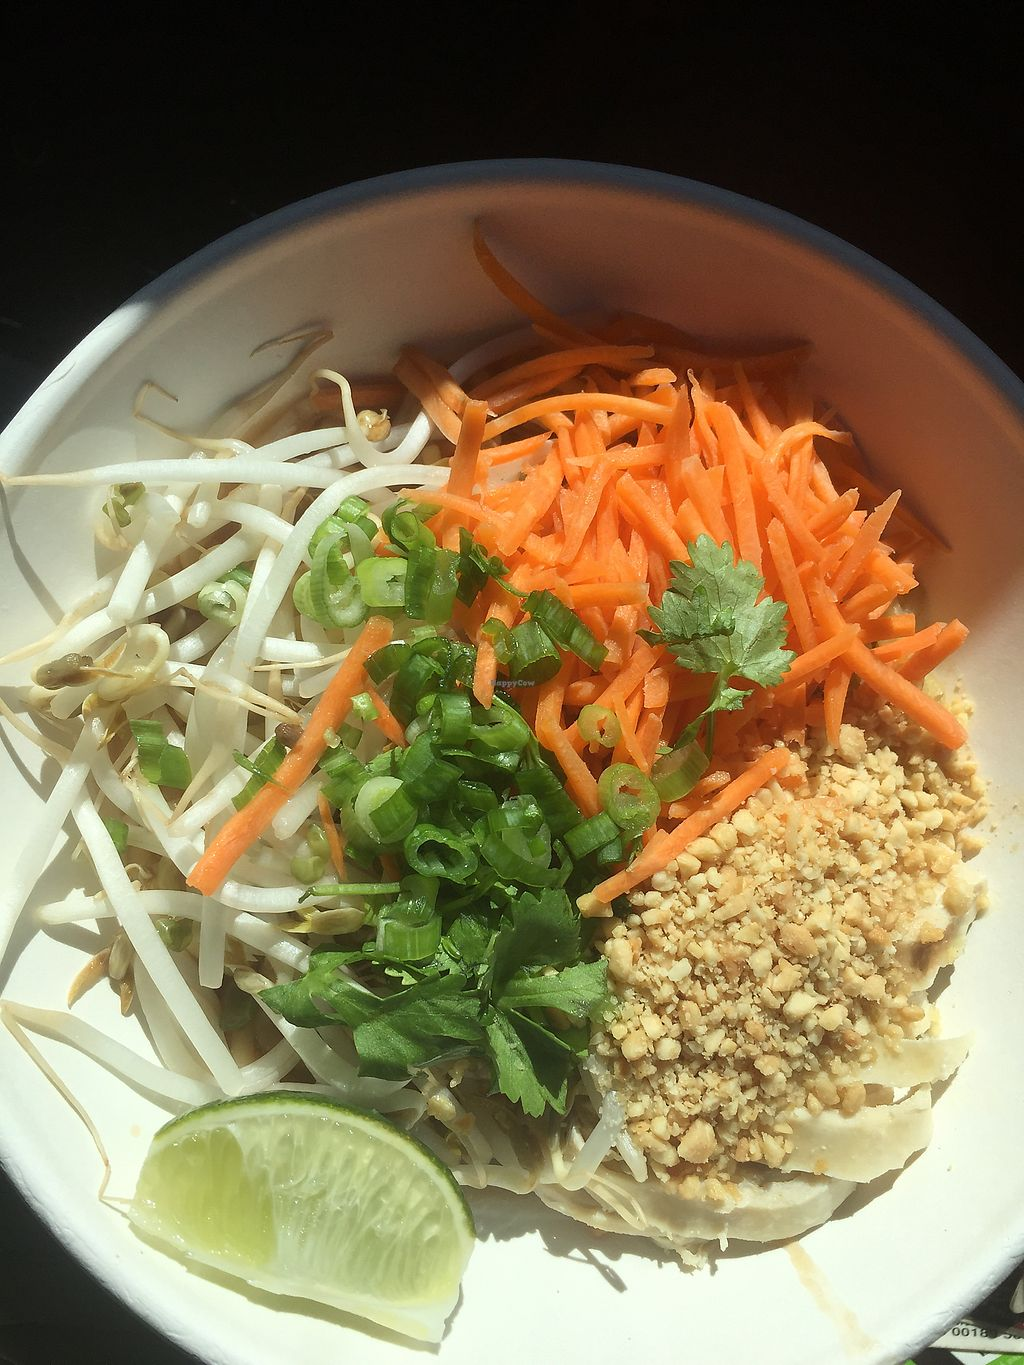 """Photo of Noodle Nirvana  by <a href=""""/members/profile/DeltaDiva5"""">DeltaDiva5</a> <br/>Thai Chicken with Kentucky Ramen noodles  <br/> September 29, 2017  - <a href='/contact/abuse/image/76449/309852'>Report</a>"""